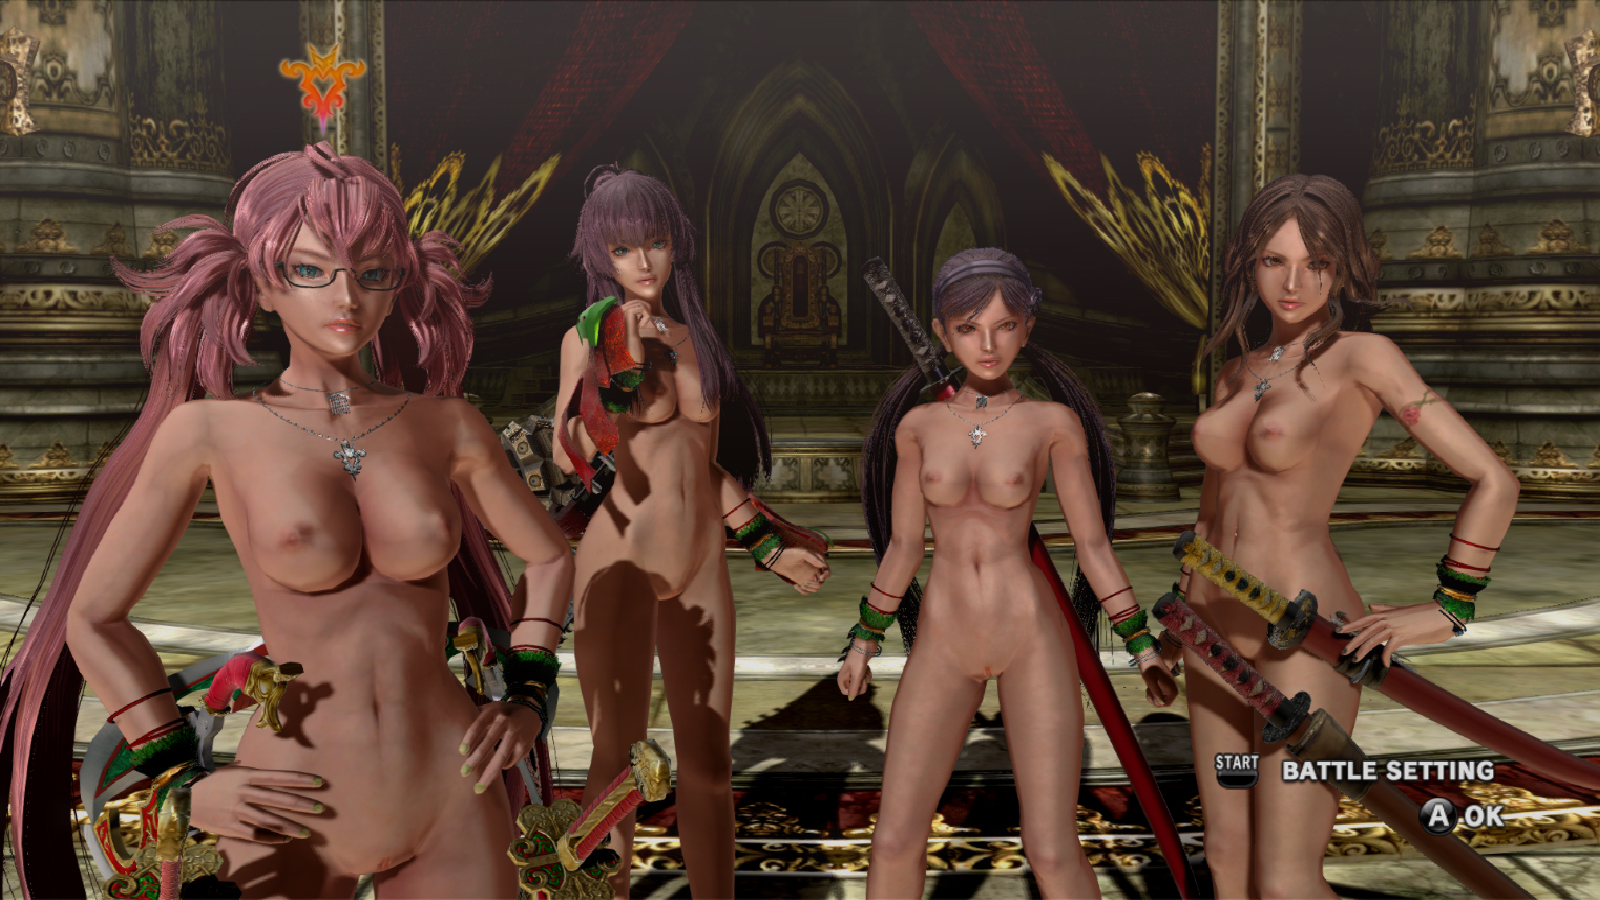 The darkness 2 nude mod erotic scene